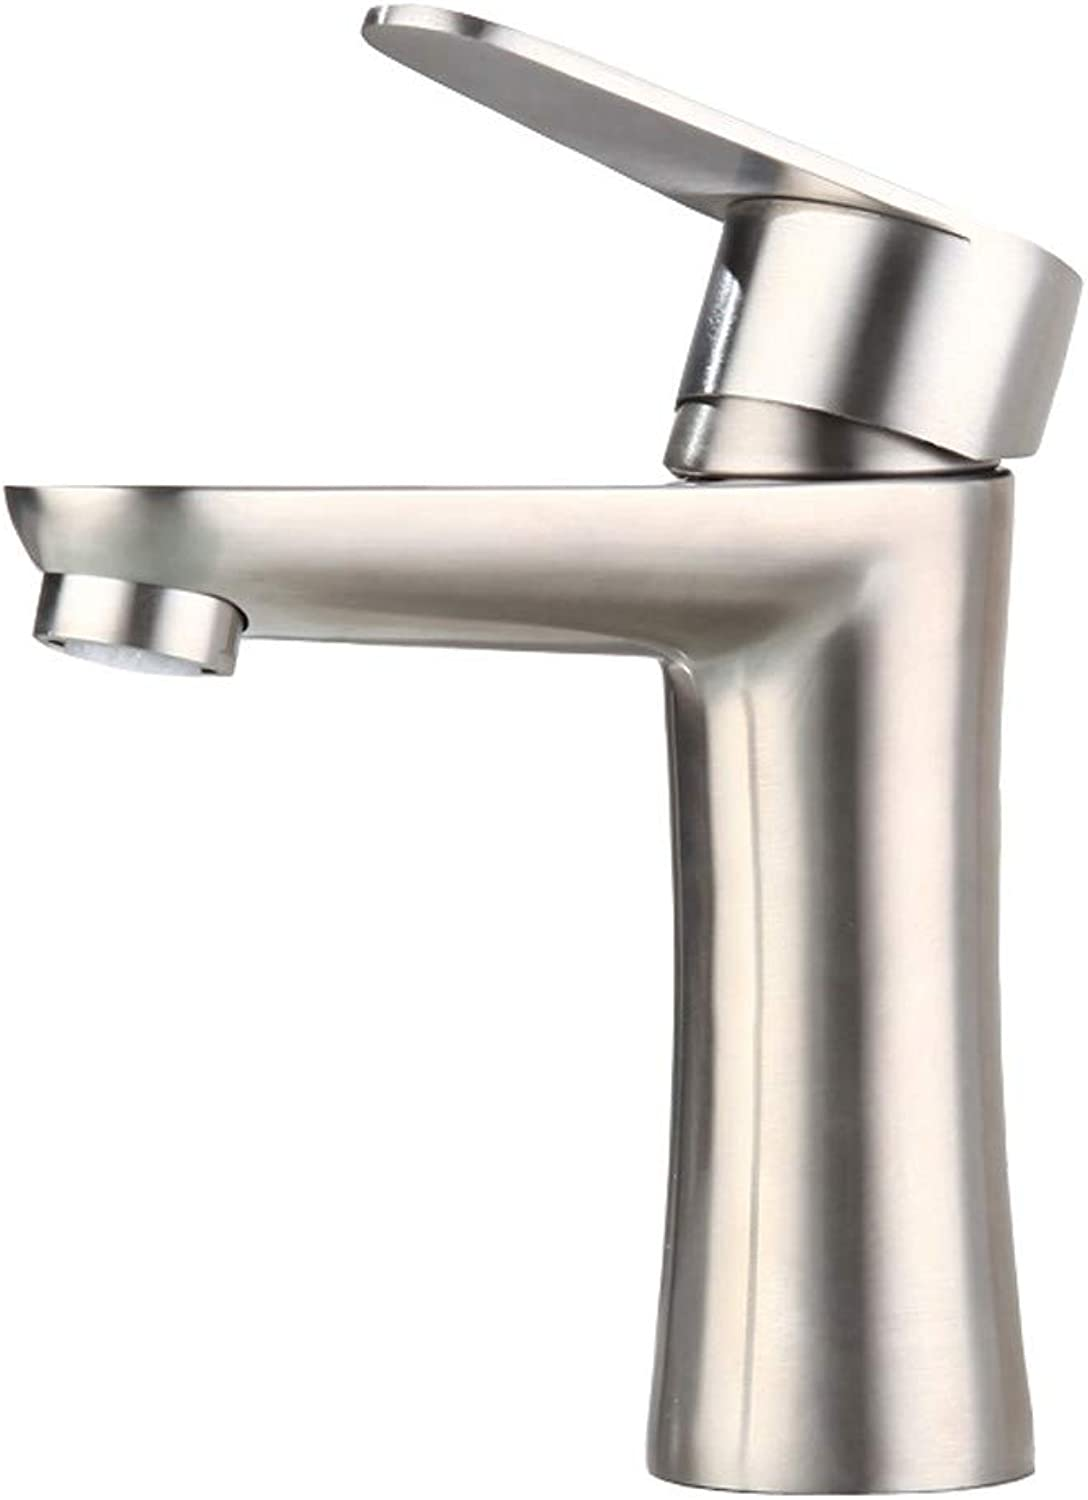 Bathroom accessories, easy to use and user-friendl Faucet, 304 Stainless Steel Hot And Cold Faucet Bathroom Washbasin Faucet Single Hole XIAHE